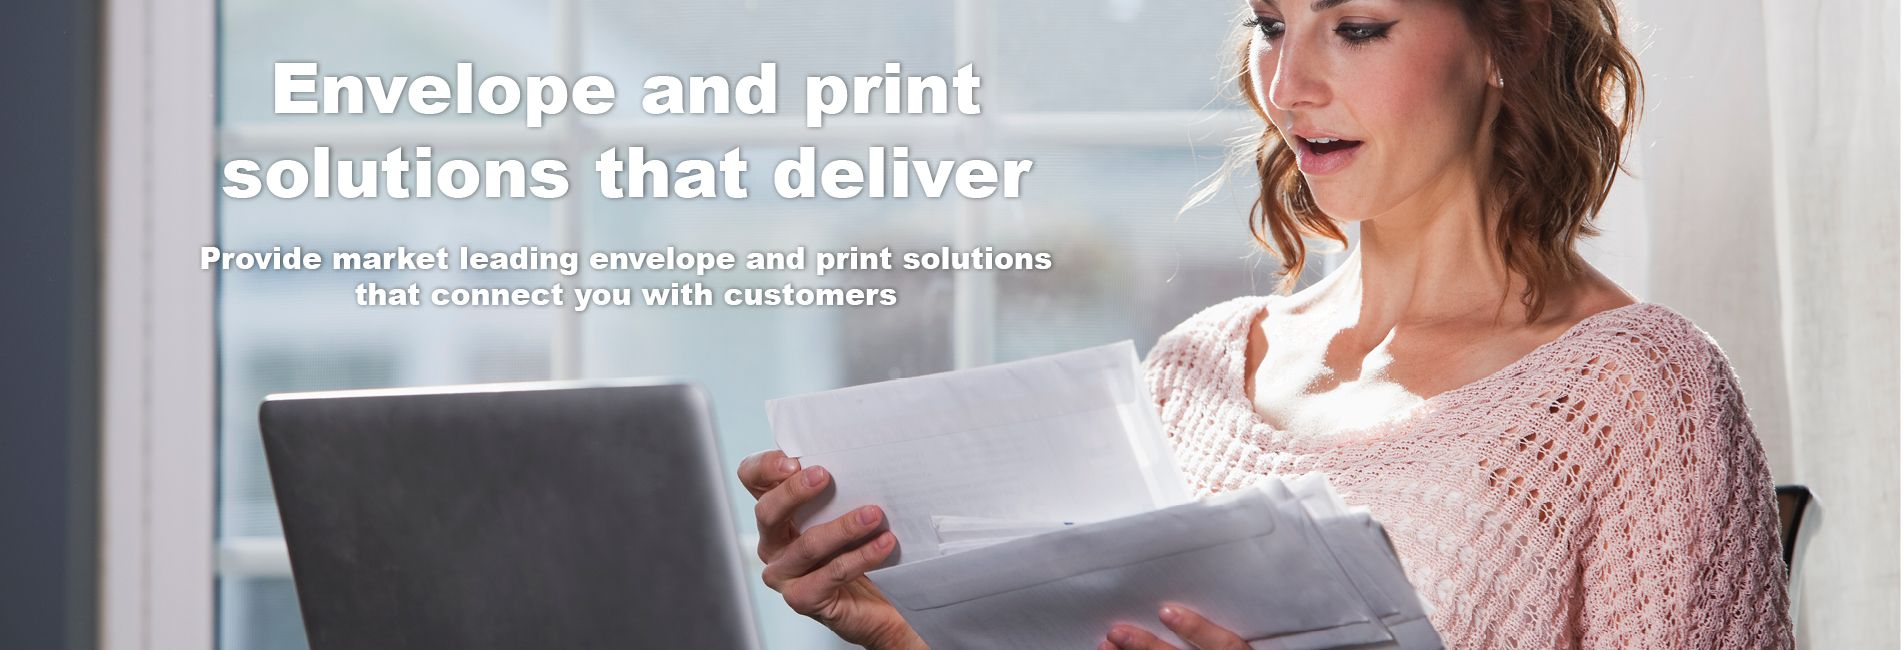 Envelope and print solutions that deliver